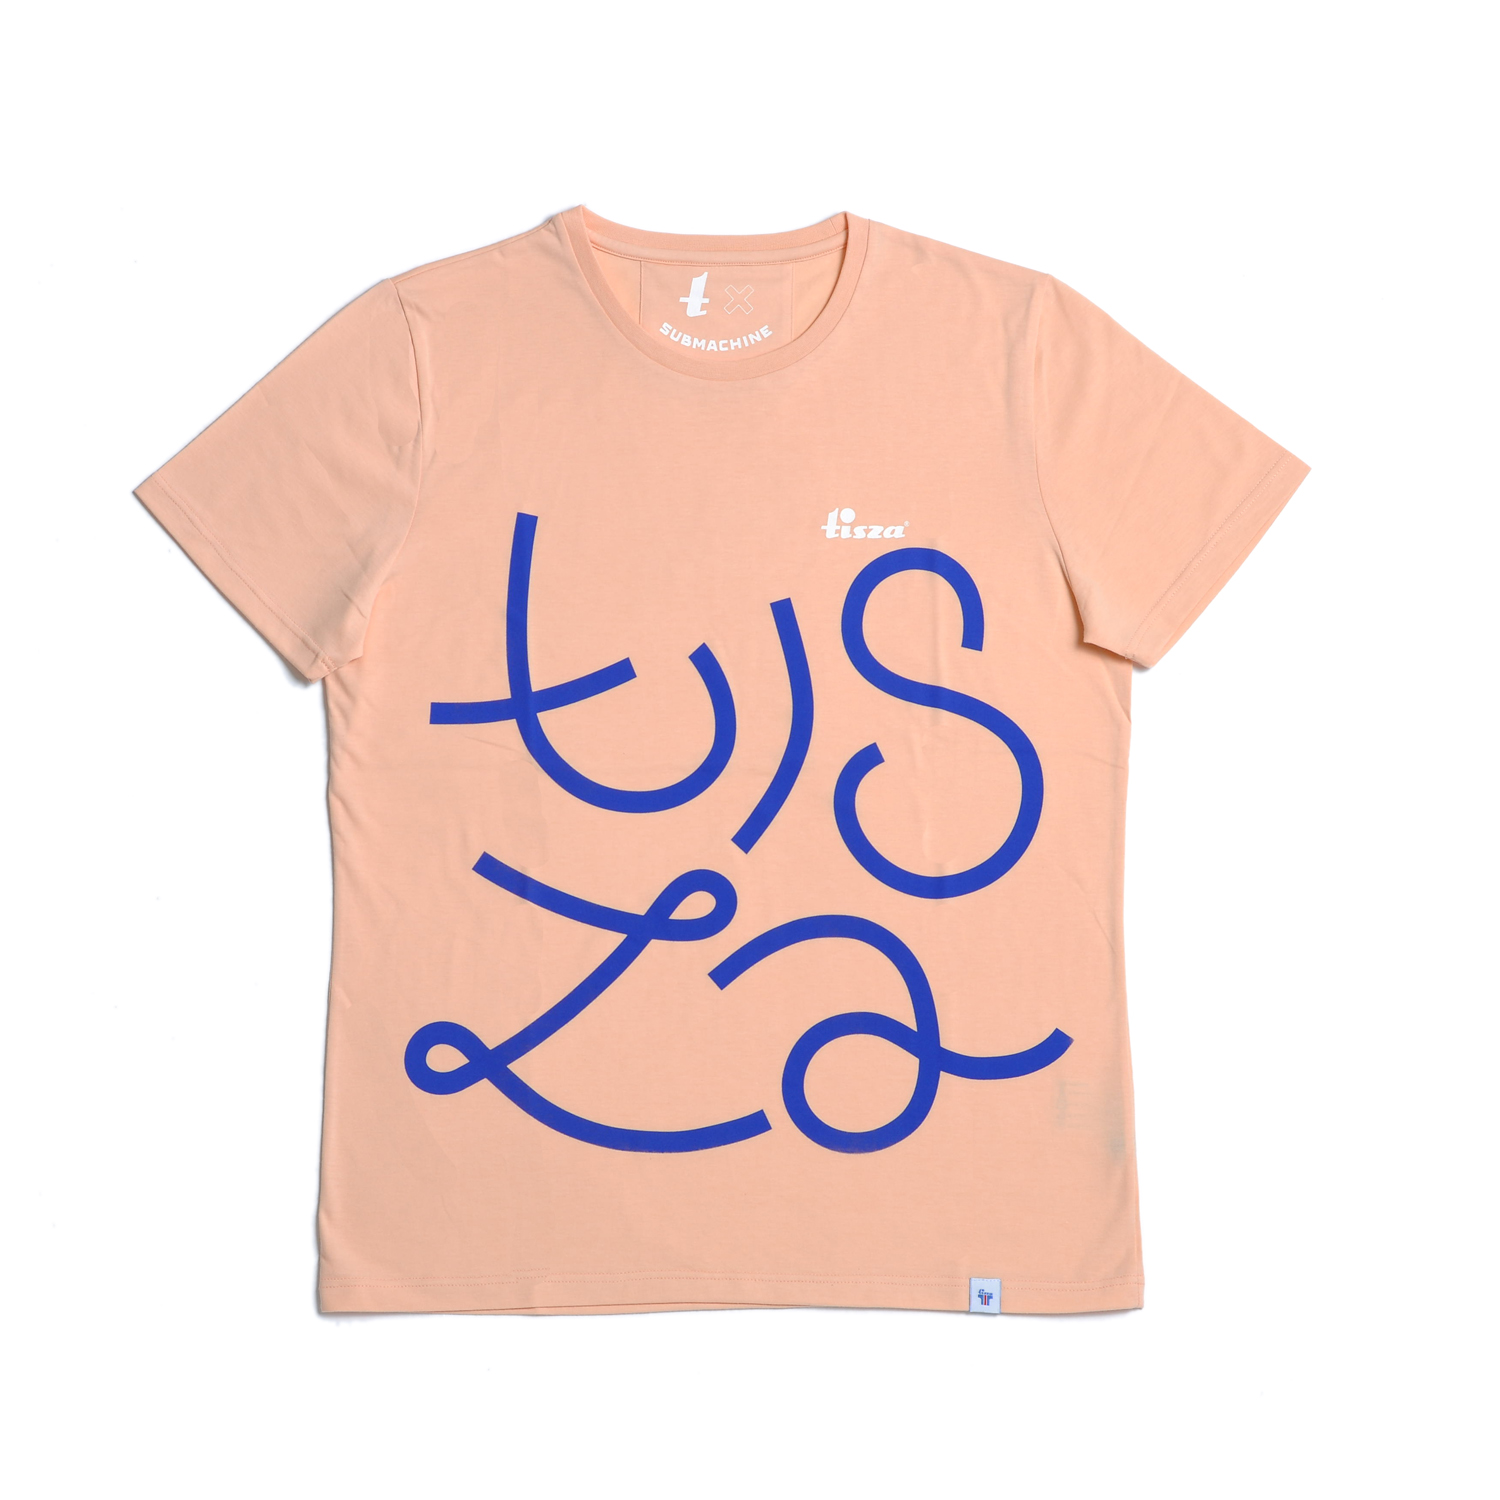 Tisza shoes - T-shirt - Salmon